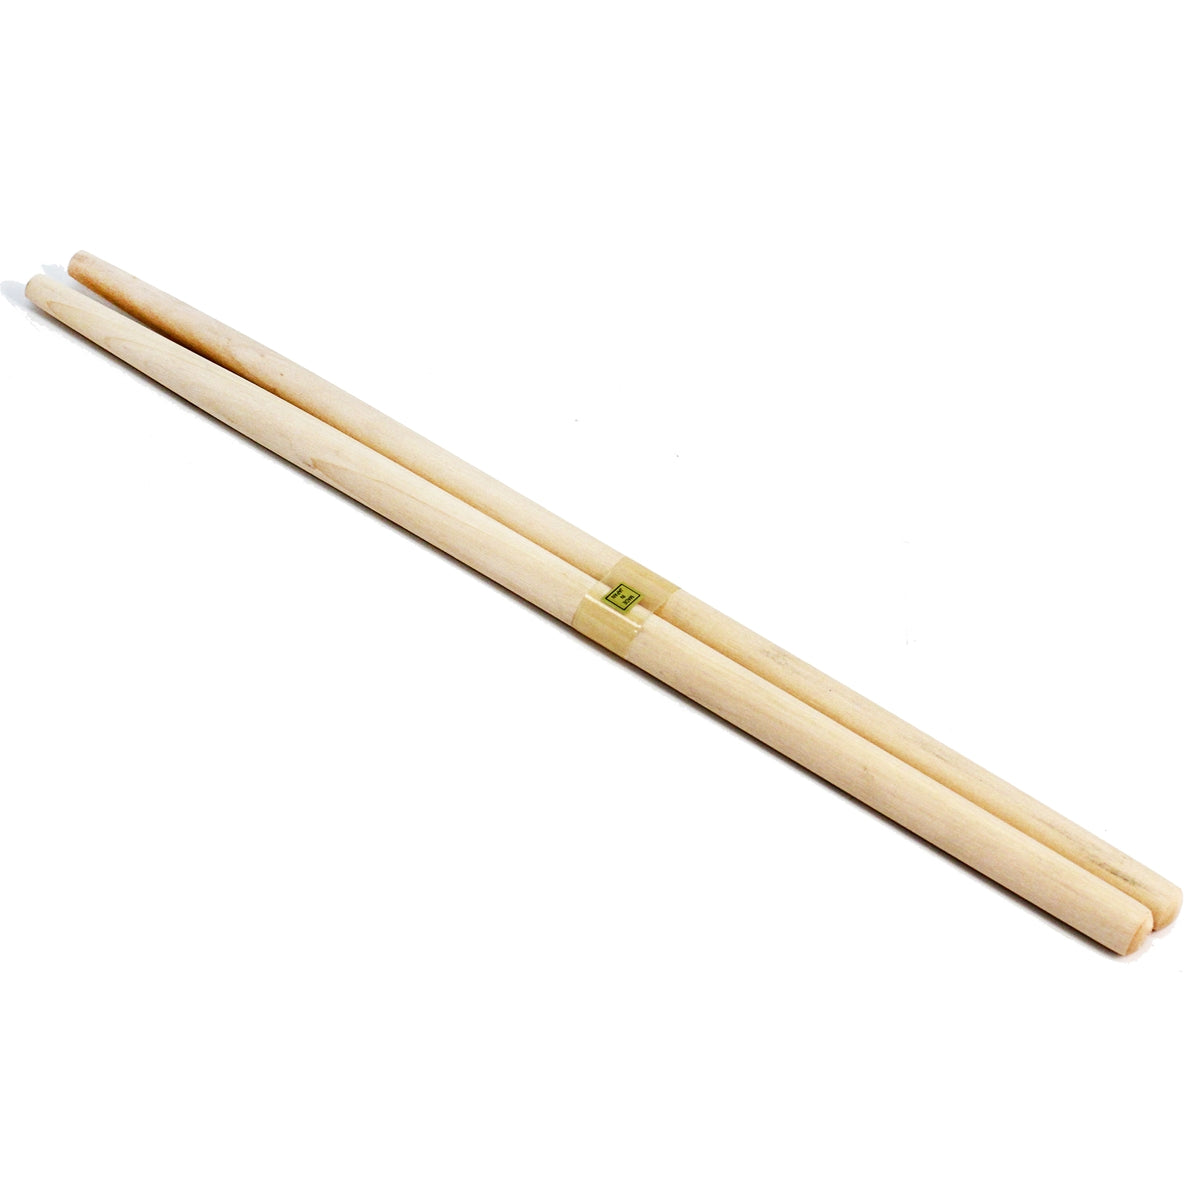 Wooden Konabo Chopsticks for Frying